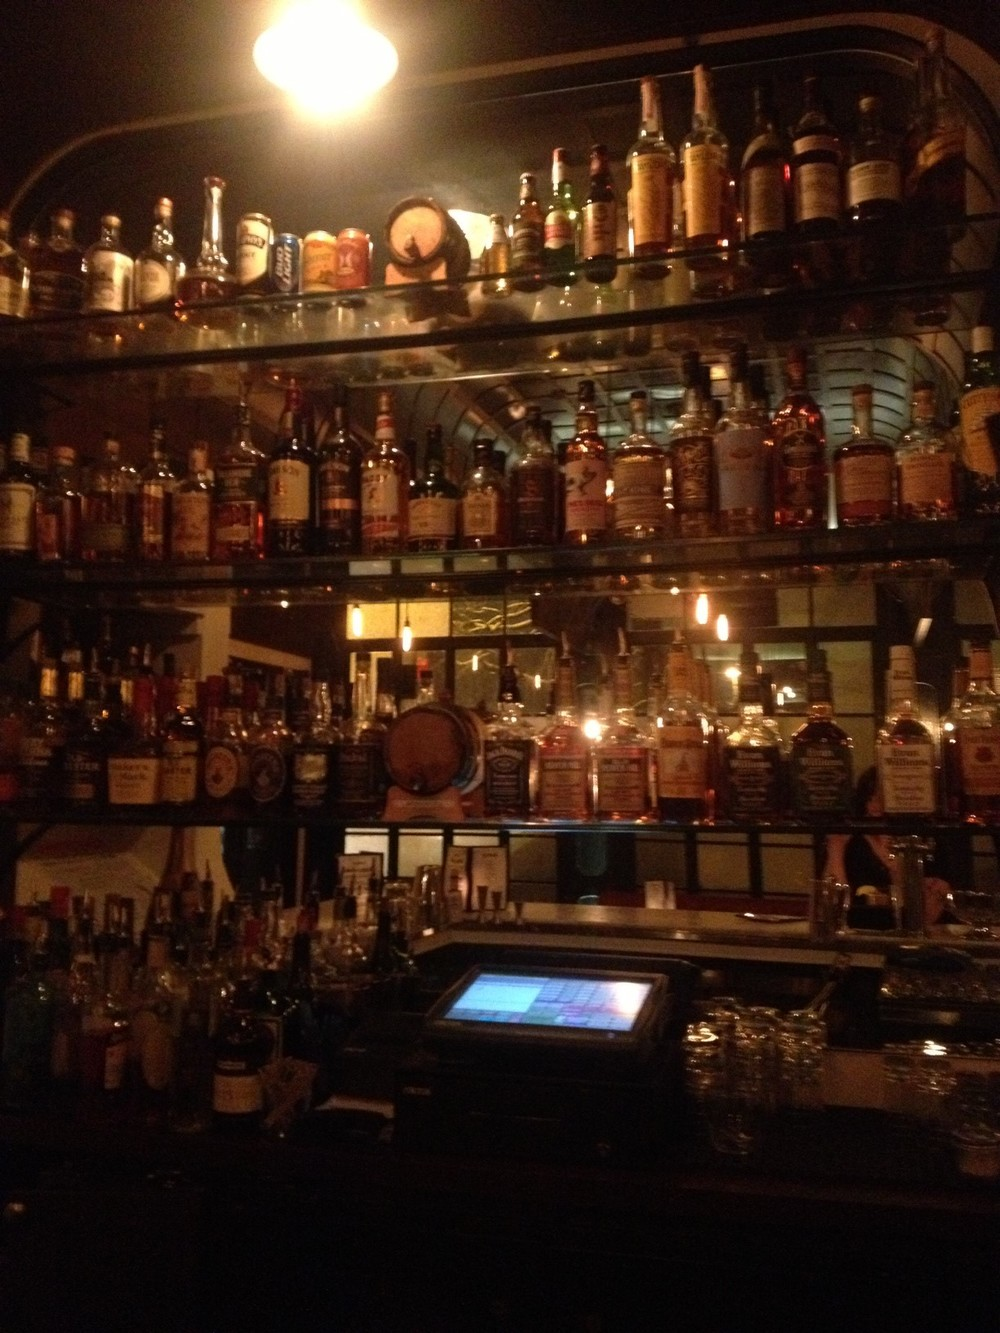 Do you see the barrel-aged drinks on the back bar? That is a quality signal right there.